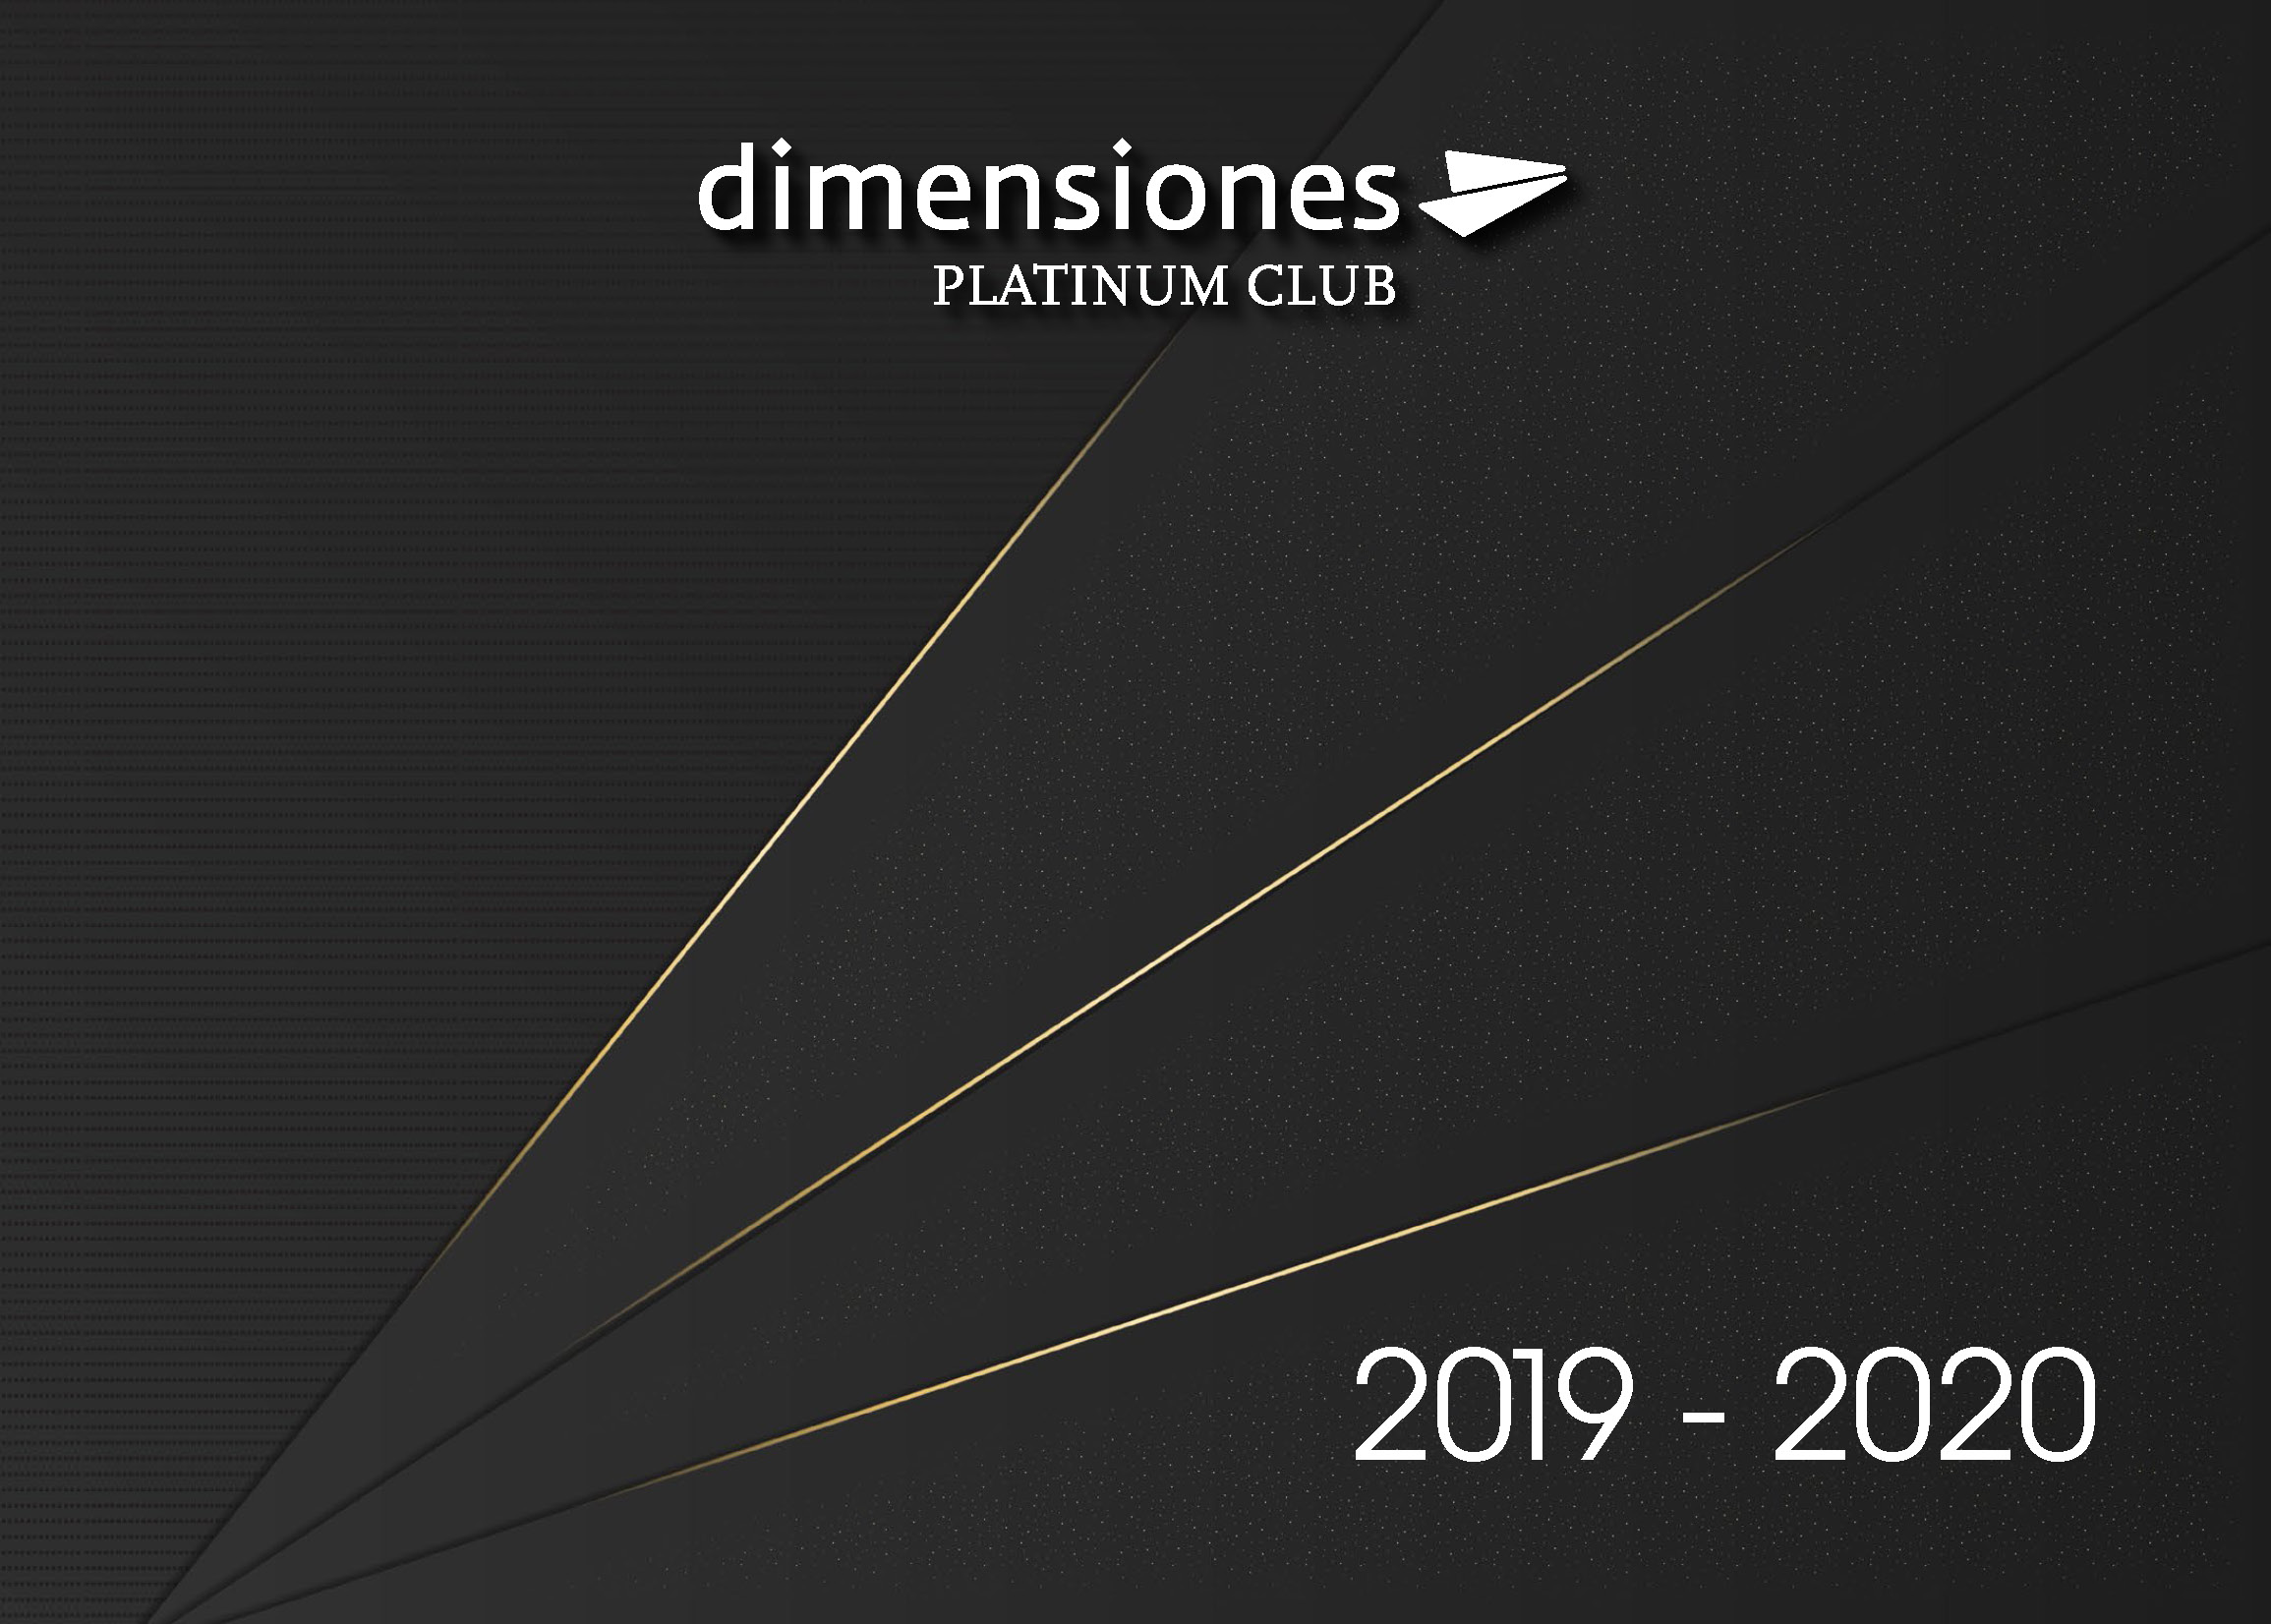 Catalogo Dimensiones Platinum Club 2019-2020